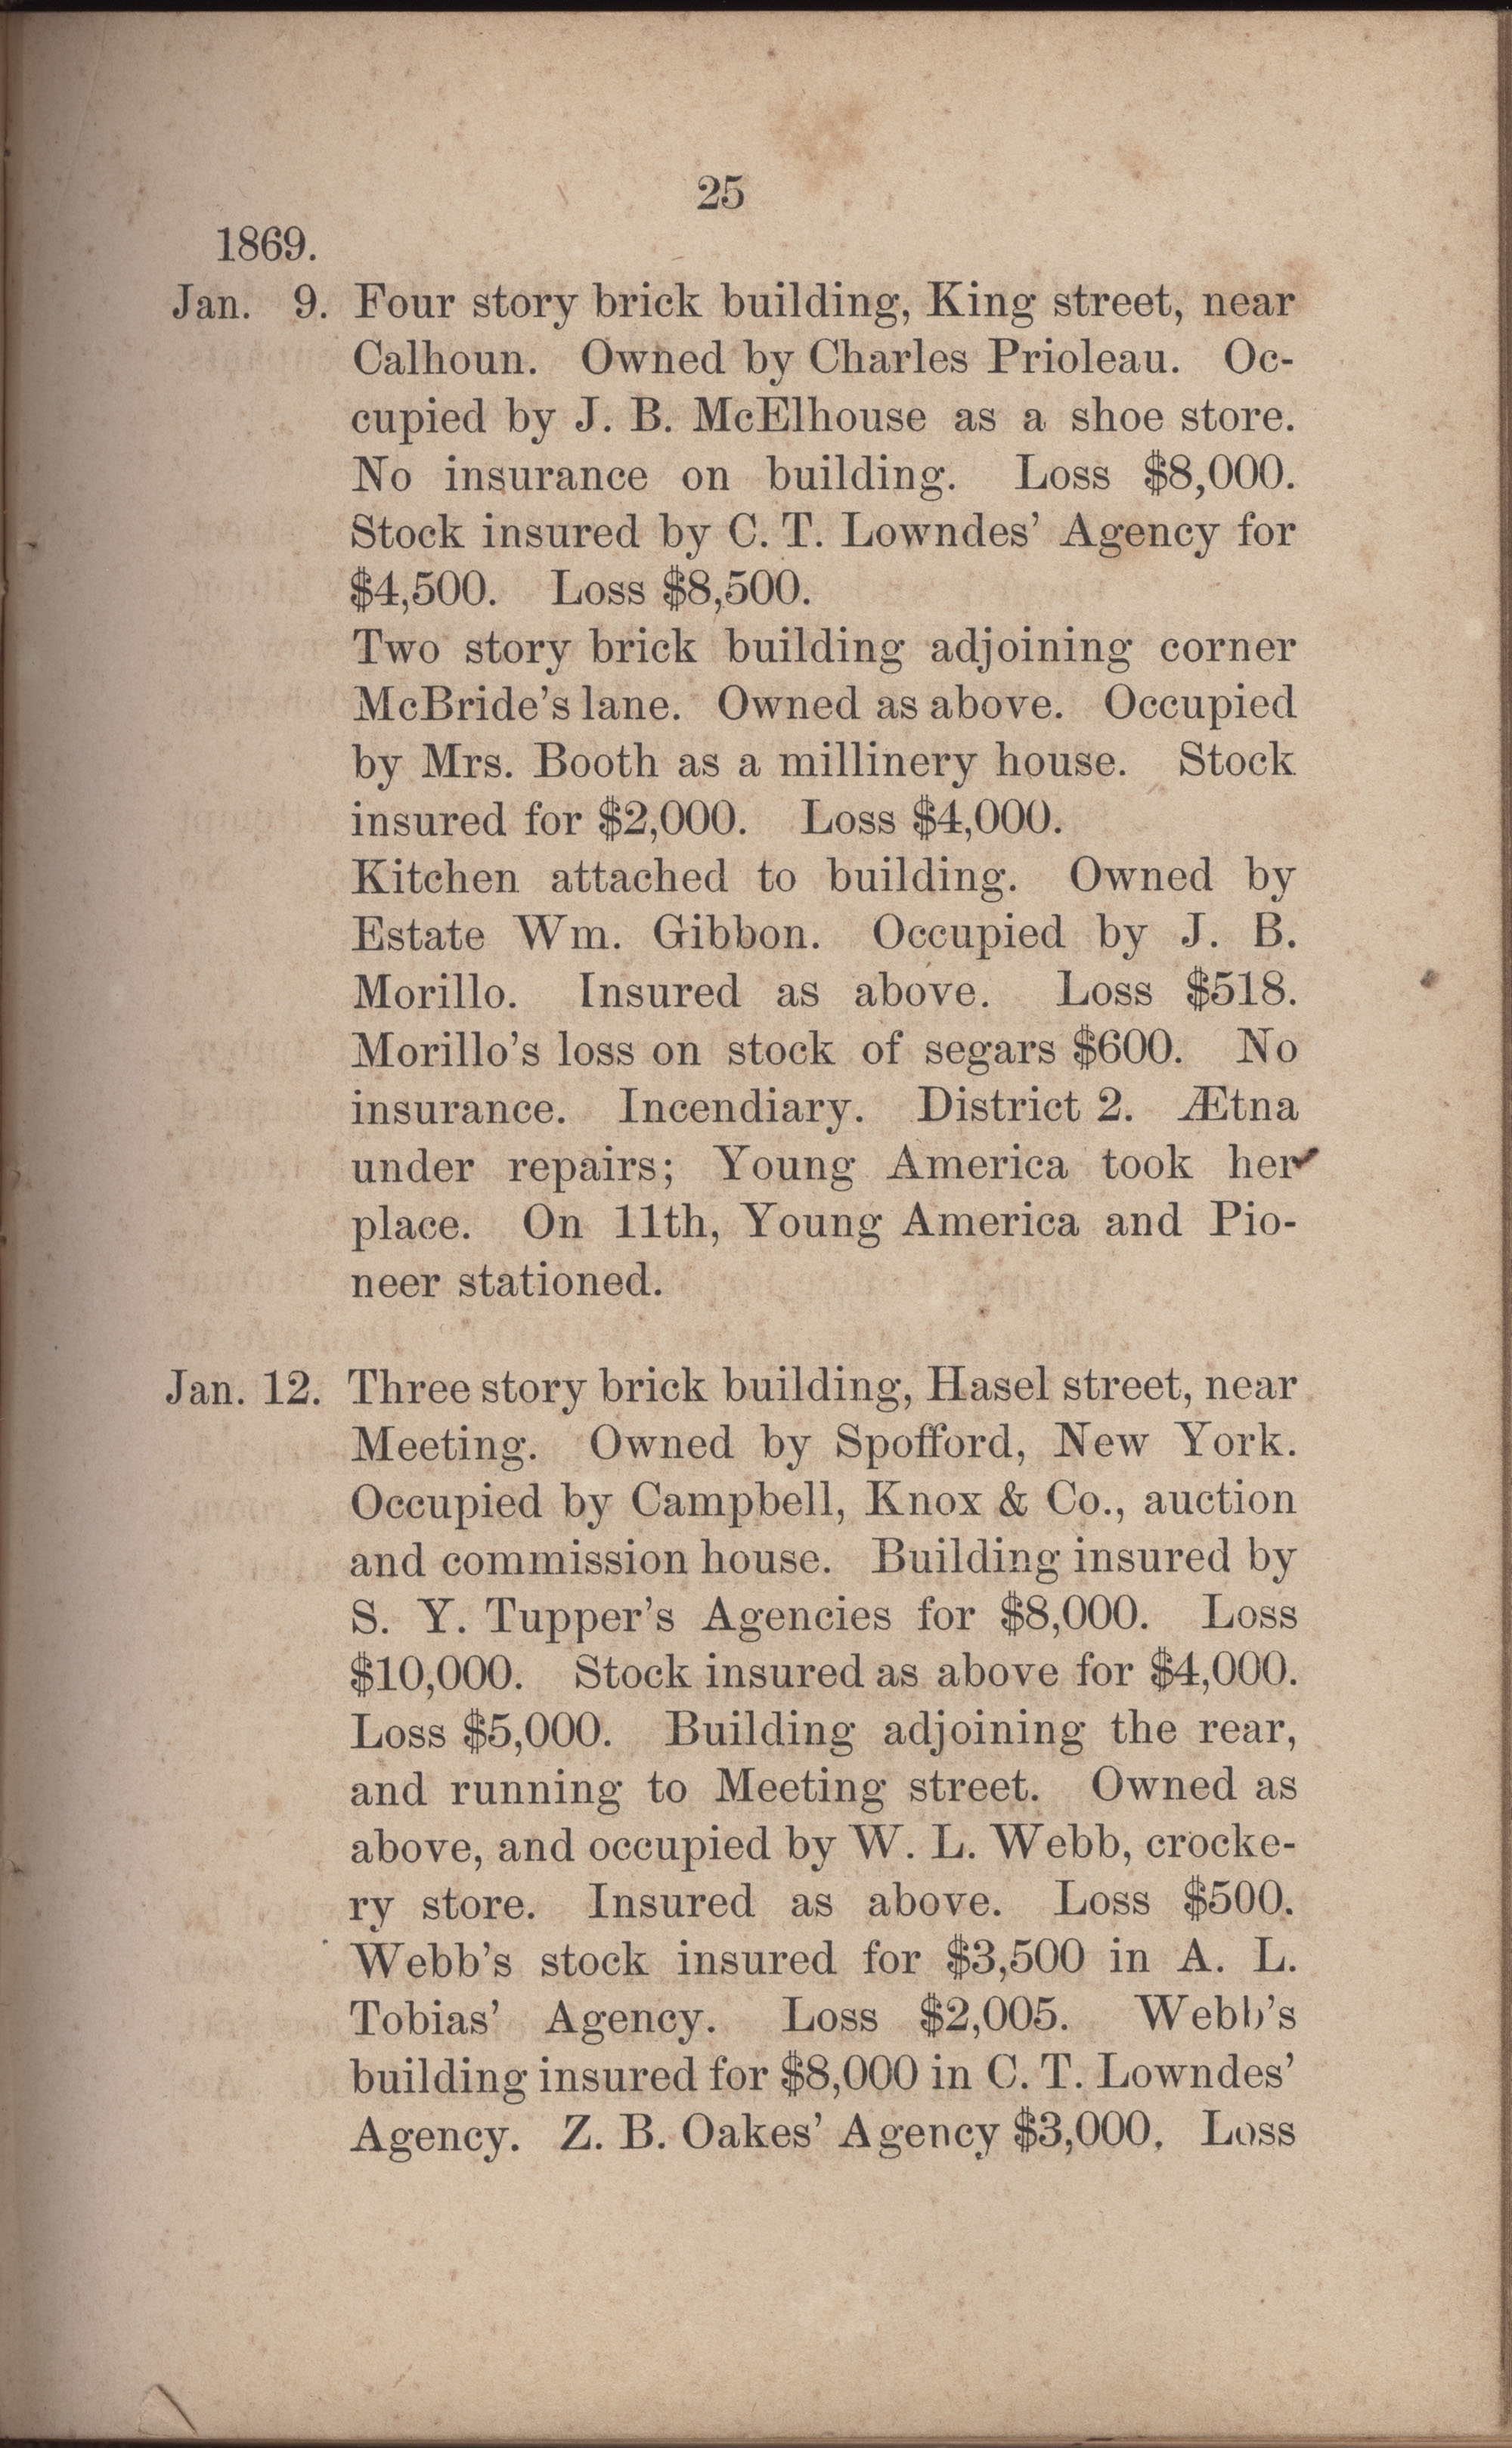 Annual Report of the Chief of the Fire Department of the City of Charleston, page 252